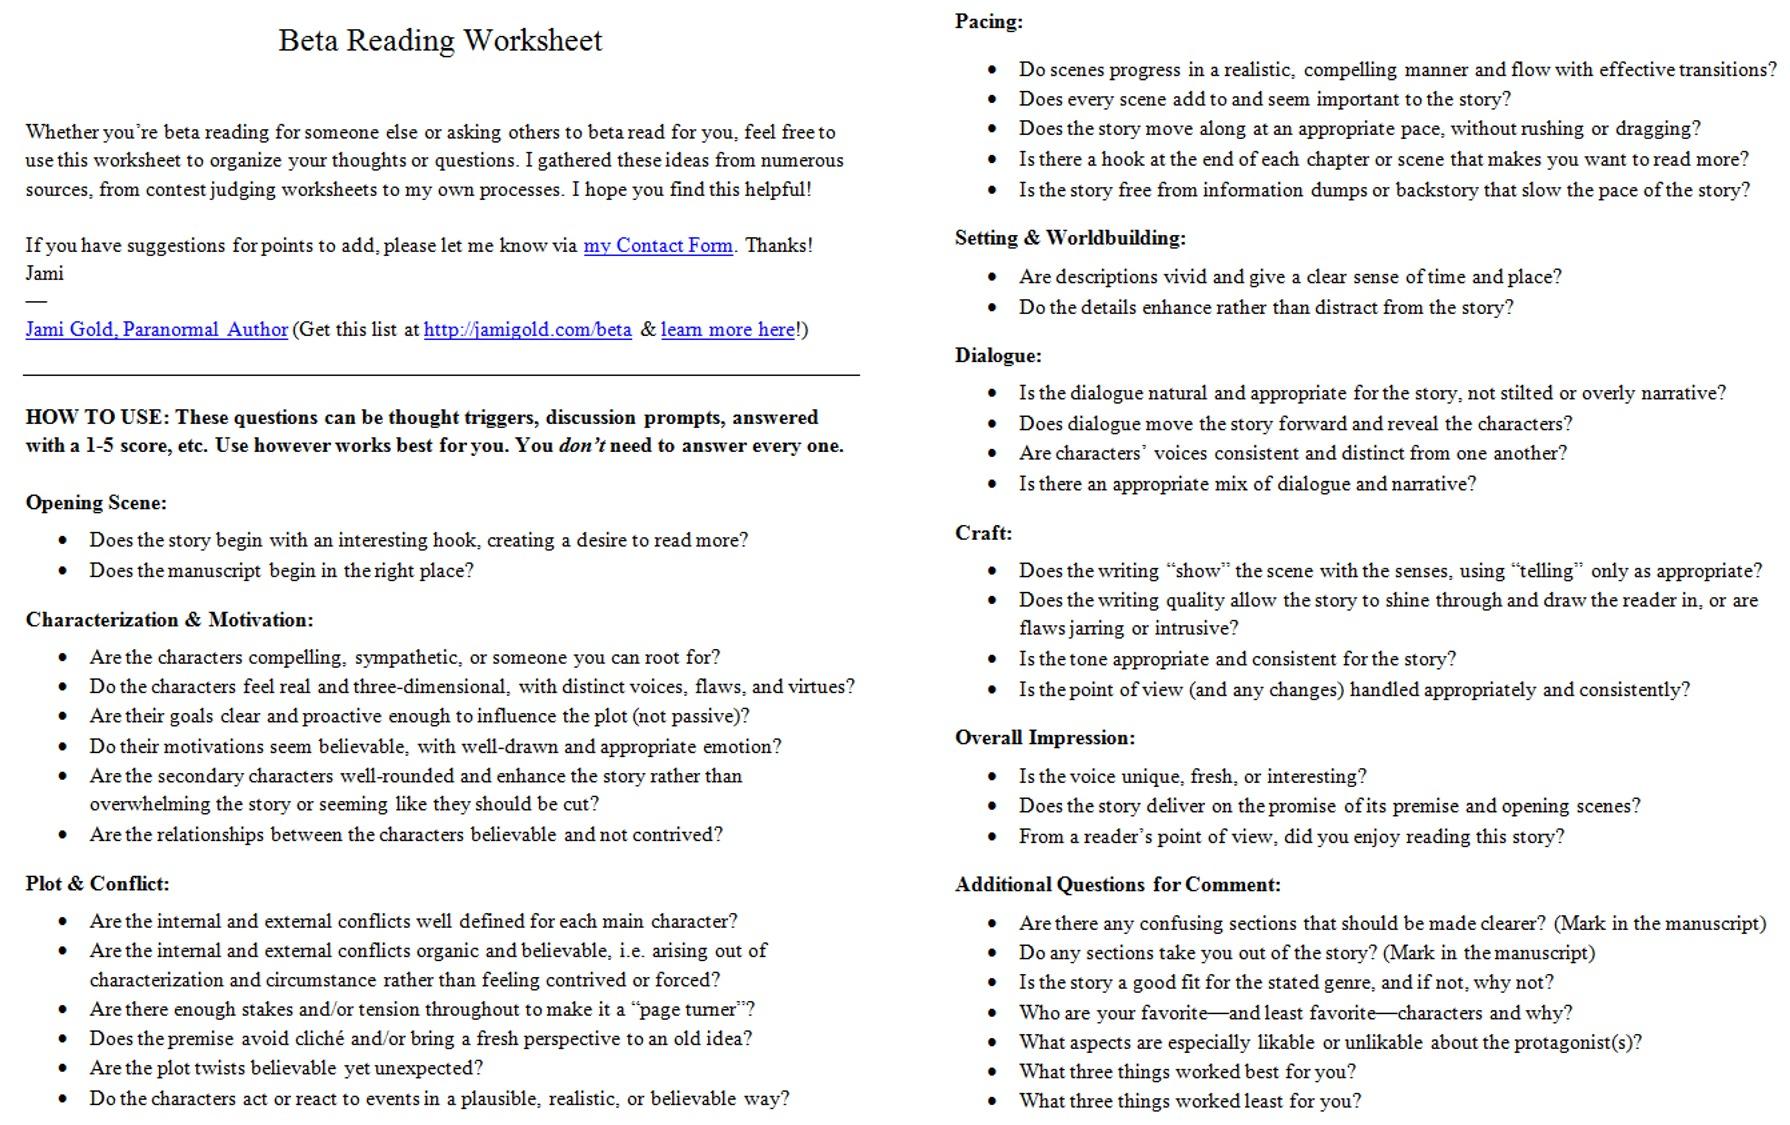 Proatmealus  Pretty Worksheets For Writers  Jami Gold Paranormal Author With Inspiring Screen Shot Of The Twopage Beta Reading Worksheet With Agreeable Addition Properties Worksheet Also Ions In Chemical Compounds Worksheet In Addition Contraction Worksheets Rd Grade And Th Grade Math Worksheet As Well As Algebraic Proportions Worksheet Additionally Mixed Operations With Fractions Worksheet From Jamigoldcom With Proatmealus  Inspiring Worksheets For Writers  Jami Gold Paranormal Author With Agreeable Screen Shot Of The Twopage Beta Reading Worksheet And Pretty Addition Properties Worksheet Also Ions In Chemical Compounds Worksheet In Addition Contraction Worksheets Rd Grade From Jamigoldcom